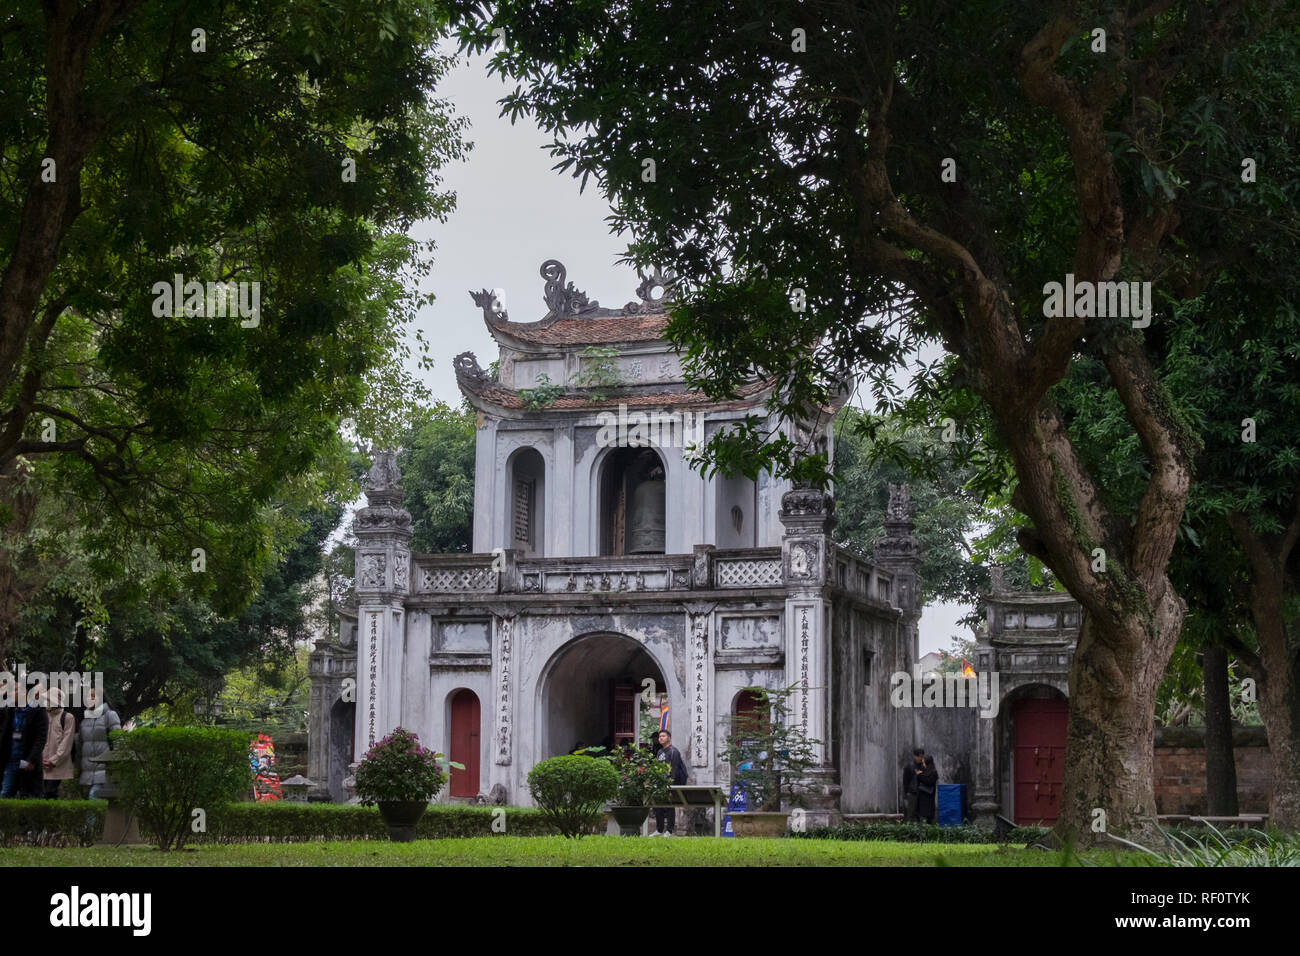 Looking at the back of the entrance gate at the Temple of Literature in Hanoi, Vietnam. Stock Photo